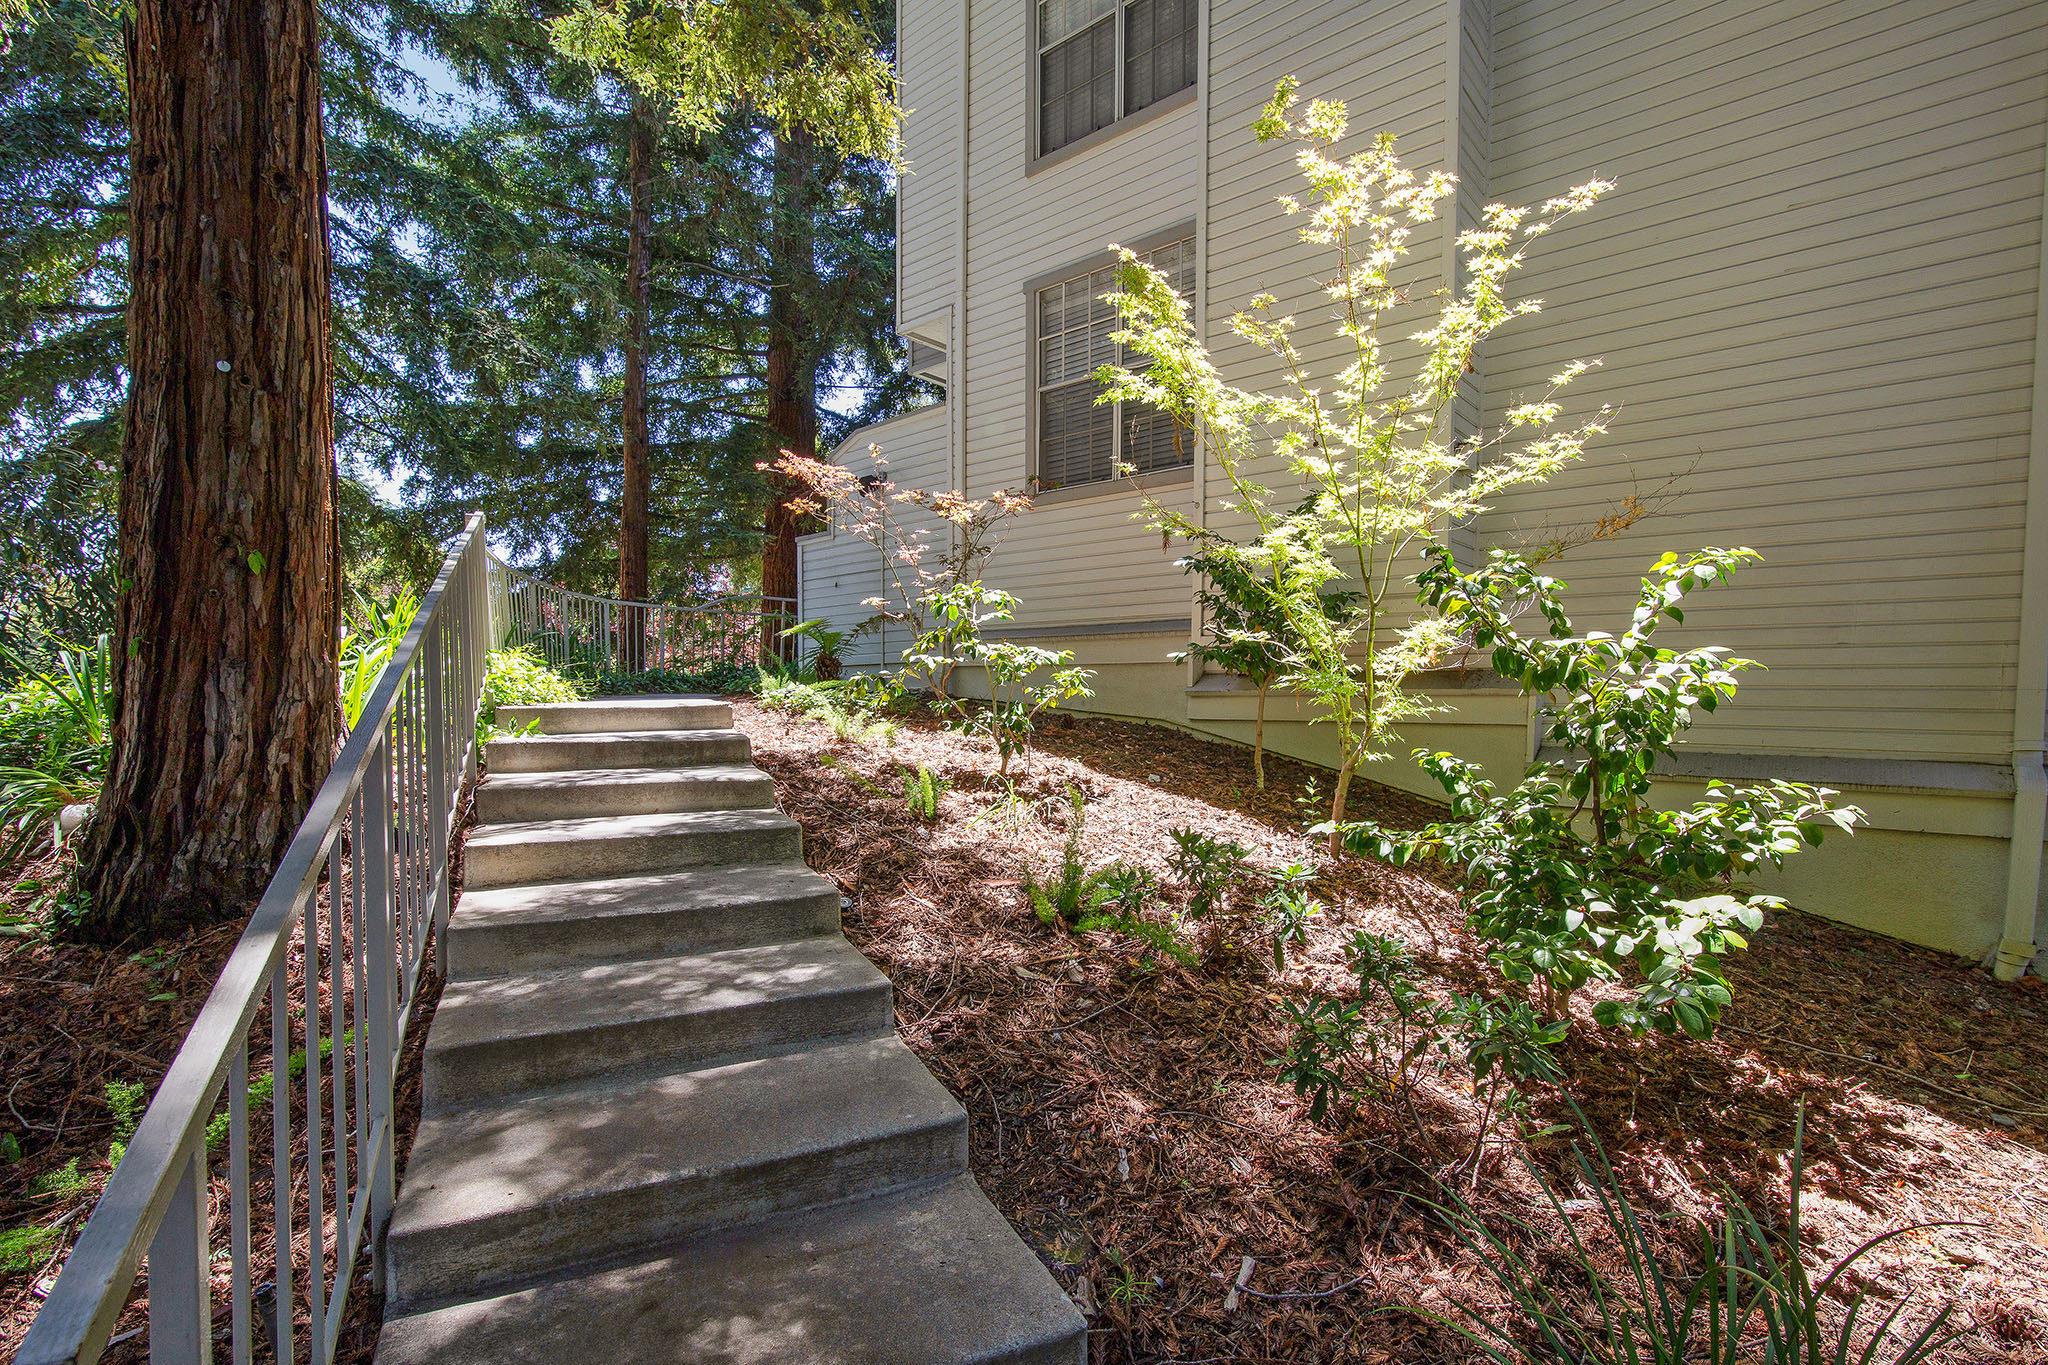 Tree-shaded entry to condo in Sunnyvale